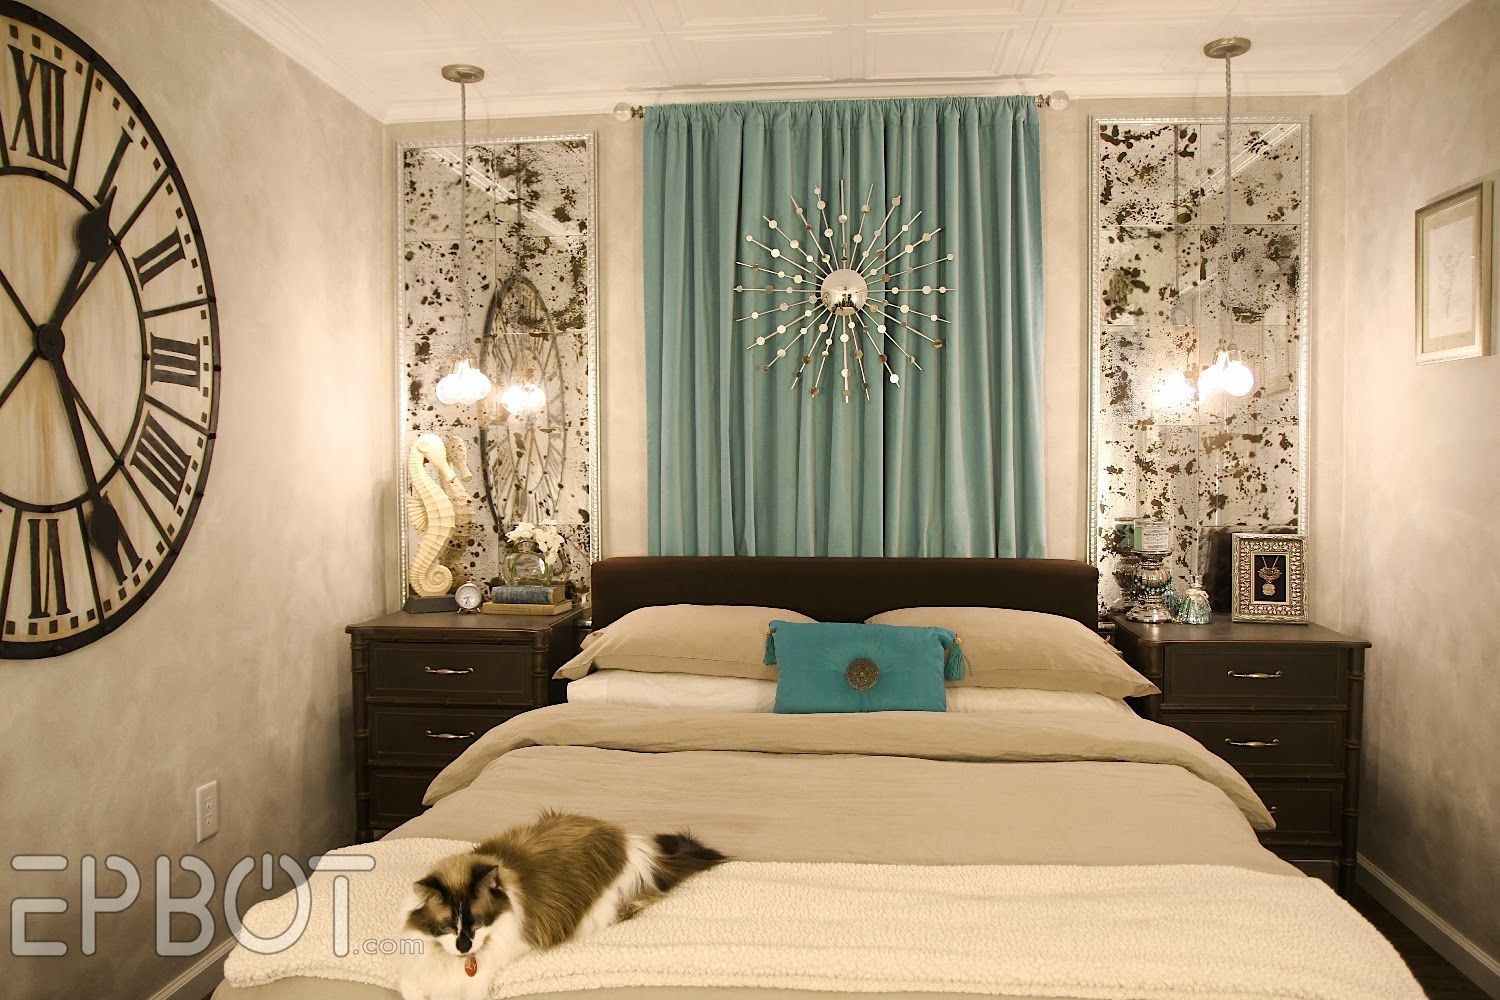 10 Redoing Bedroom Ideas Awesome and Attractive images